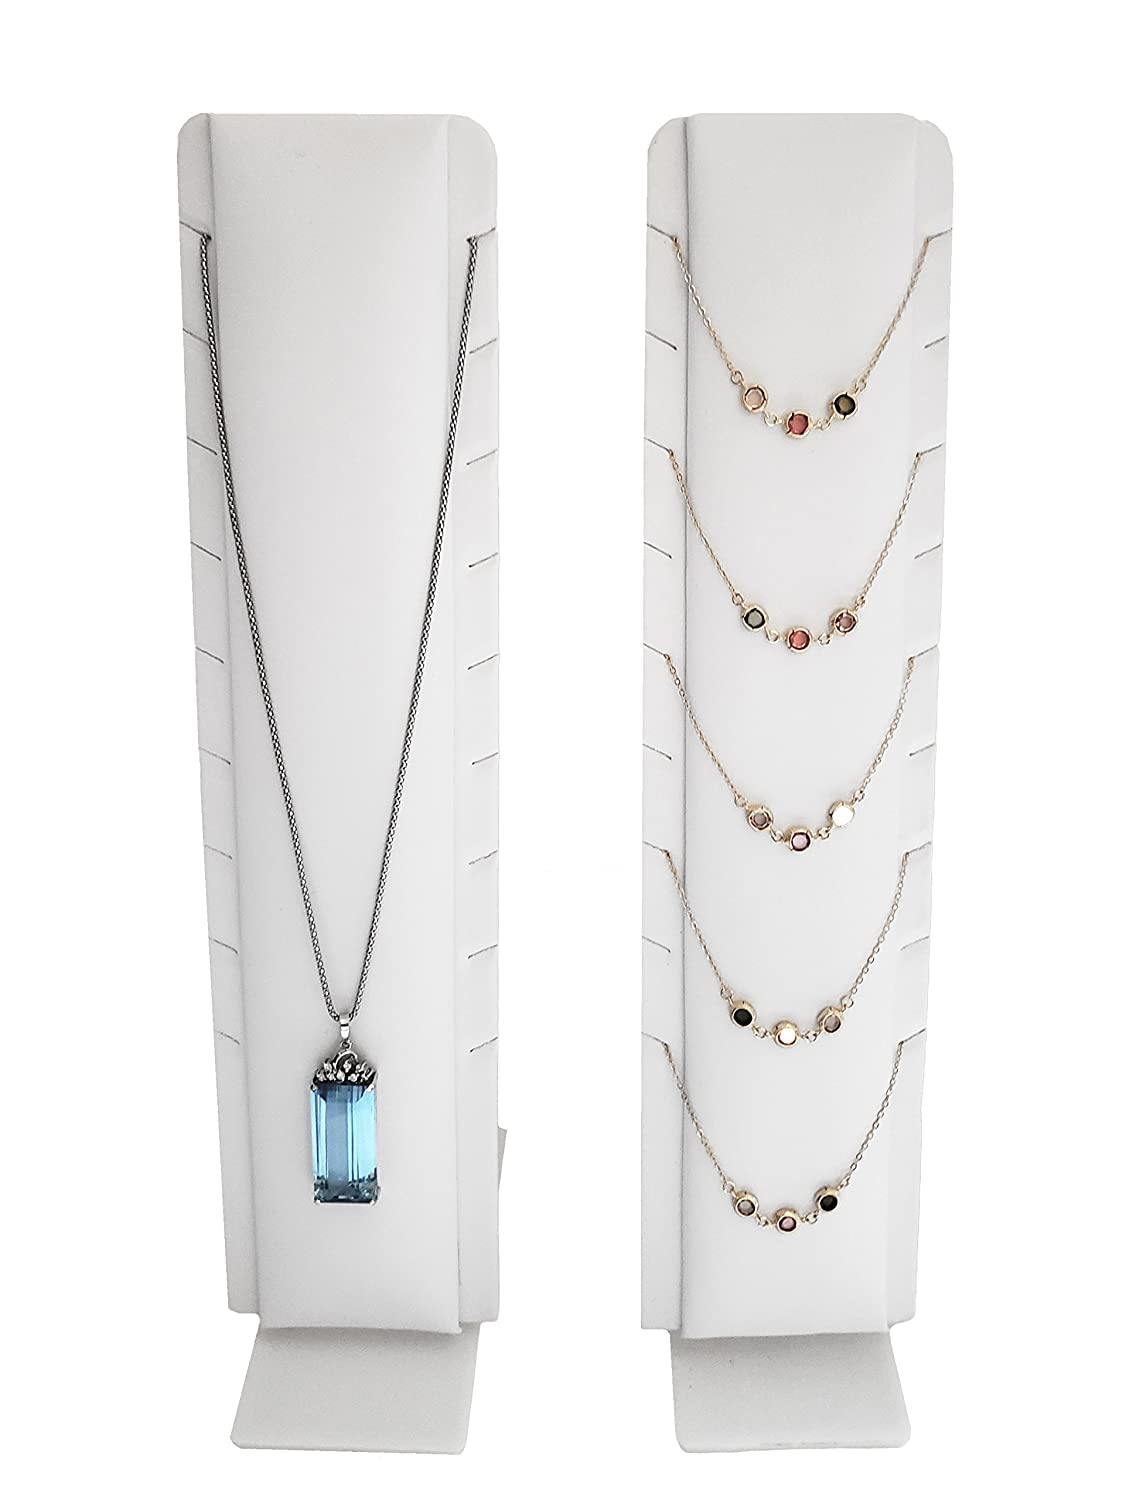 White Faux Leatherette ND199 Necklace Jewelry Display with Adjustable Stand